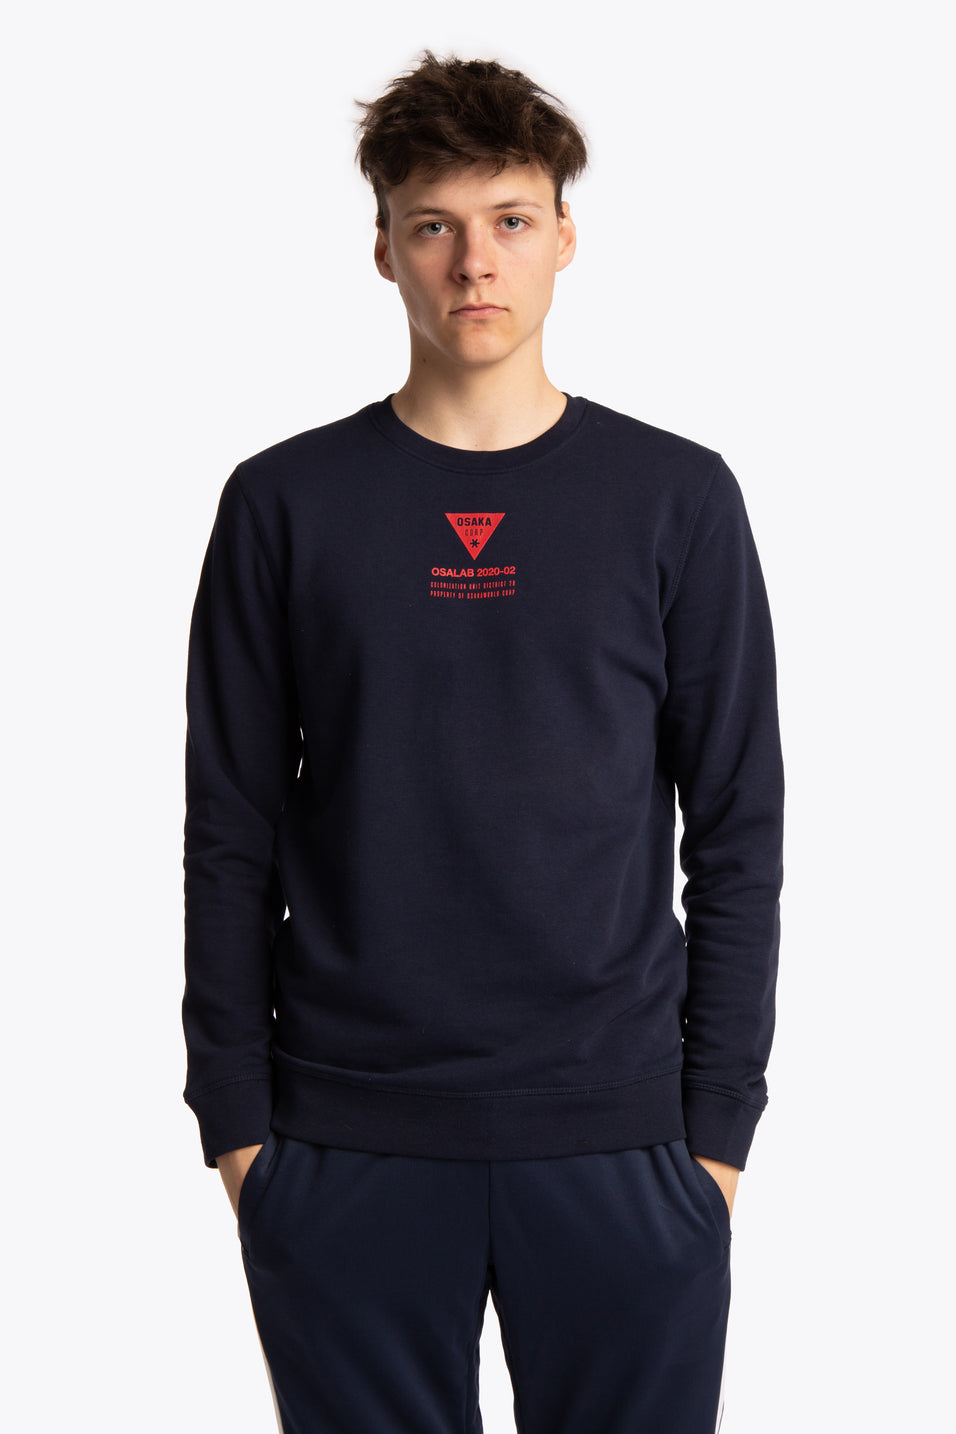 Osakaworld unisex sweater navy